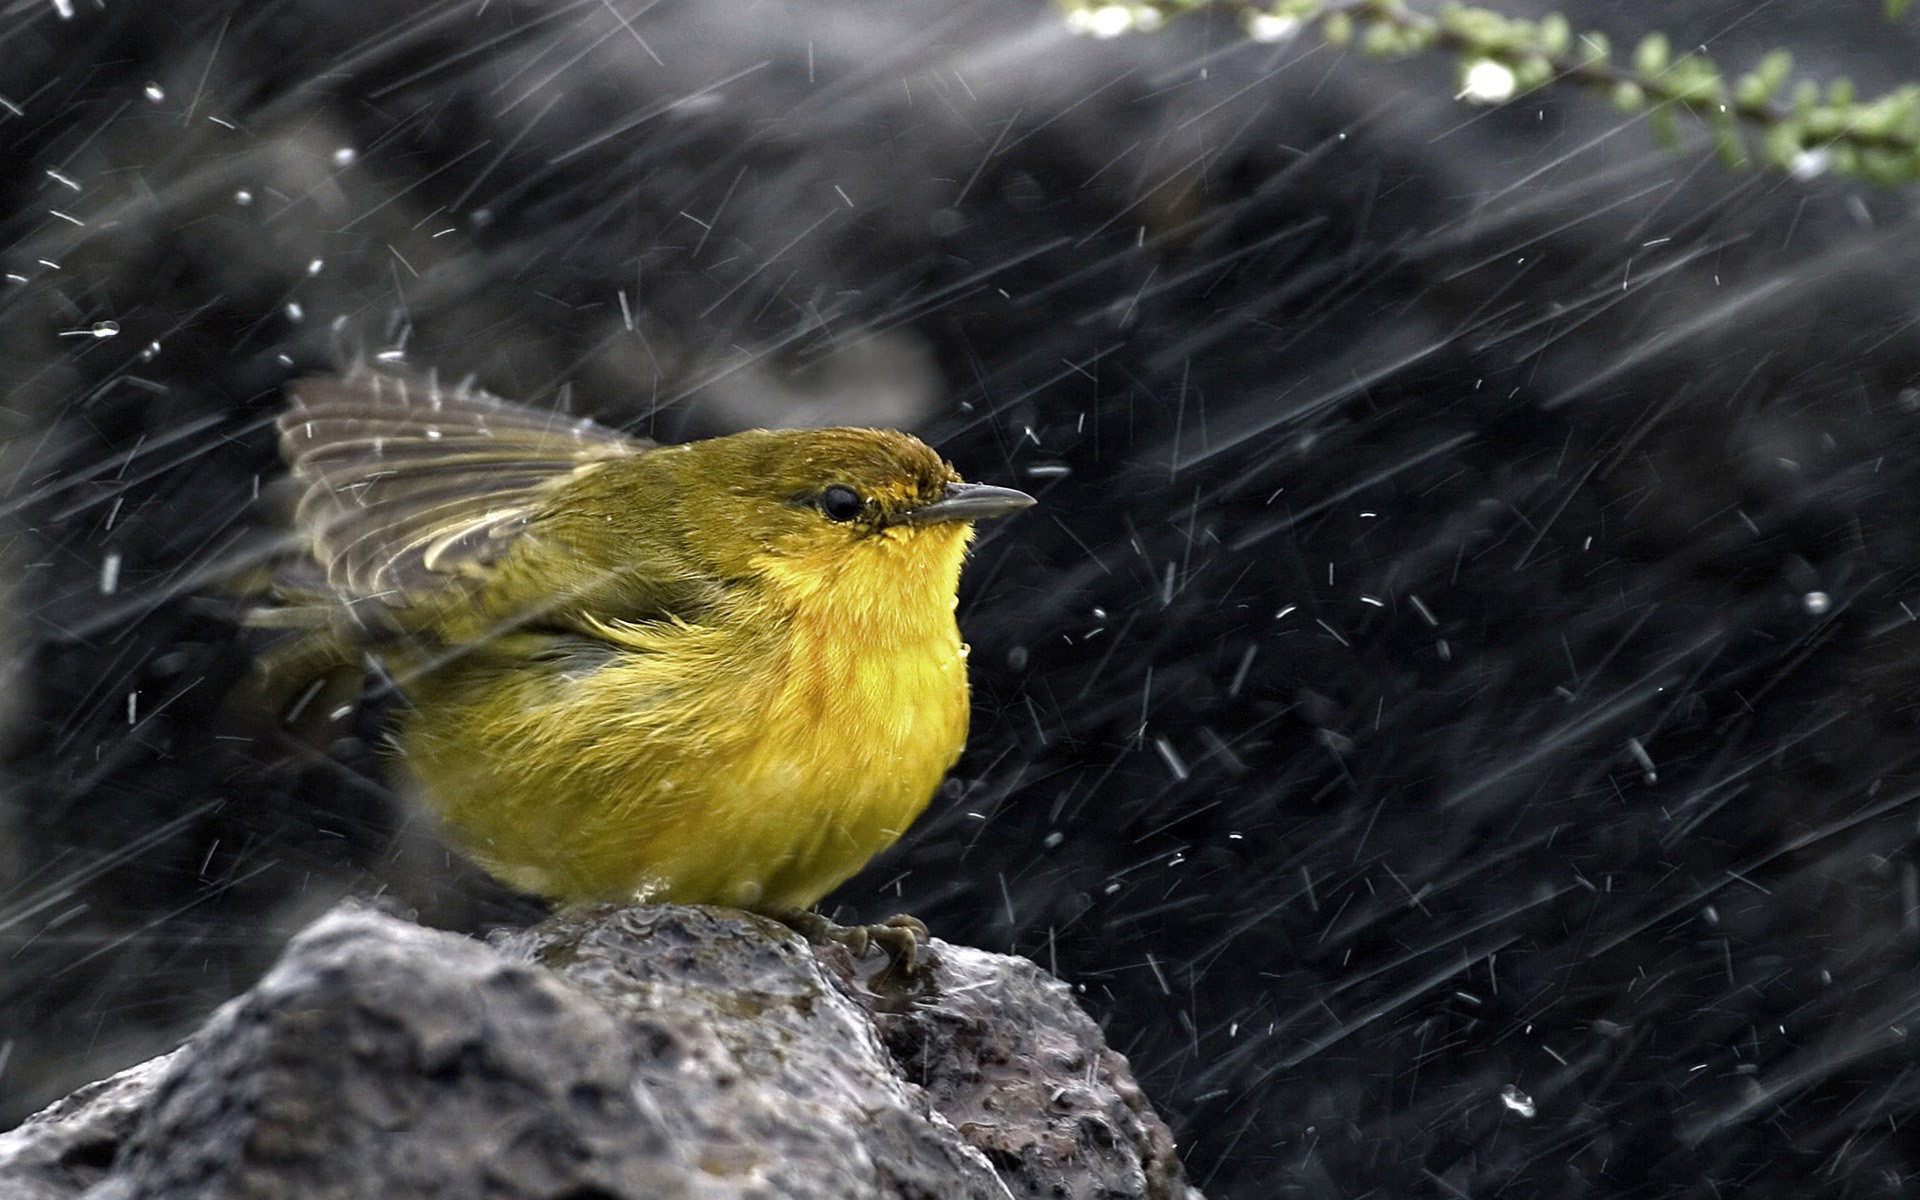 http://hdfreewallpaper.net/wp-content/uploads/2015/07/Bird-In-Rain-HD-Wallpaper.jpg